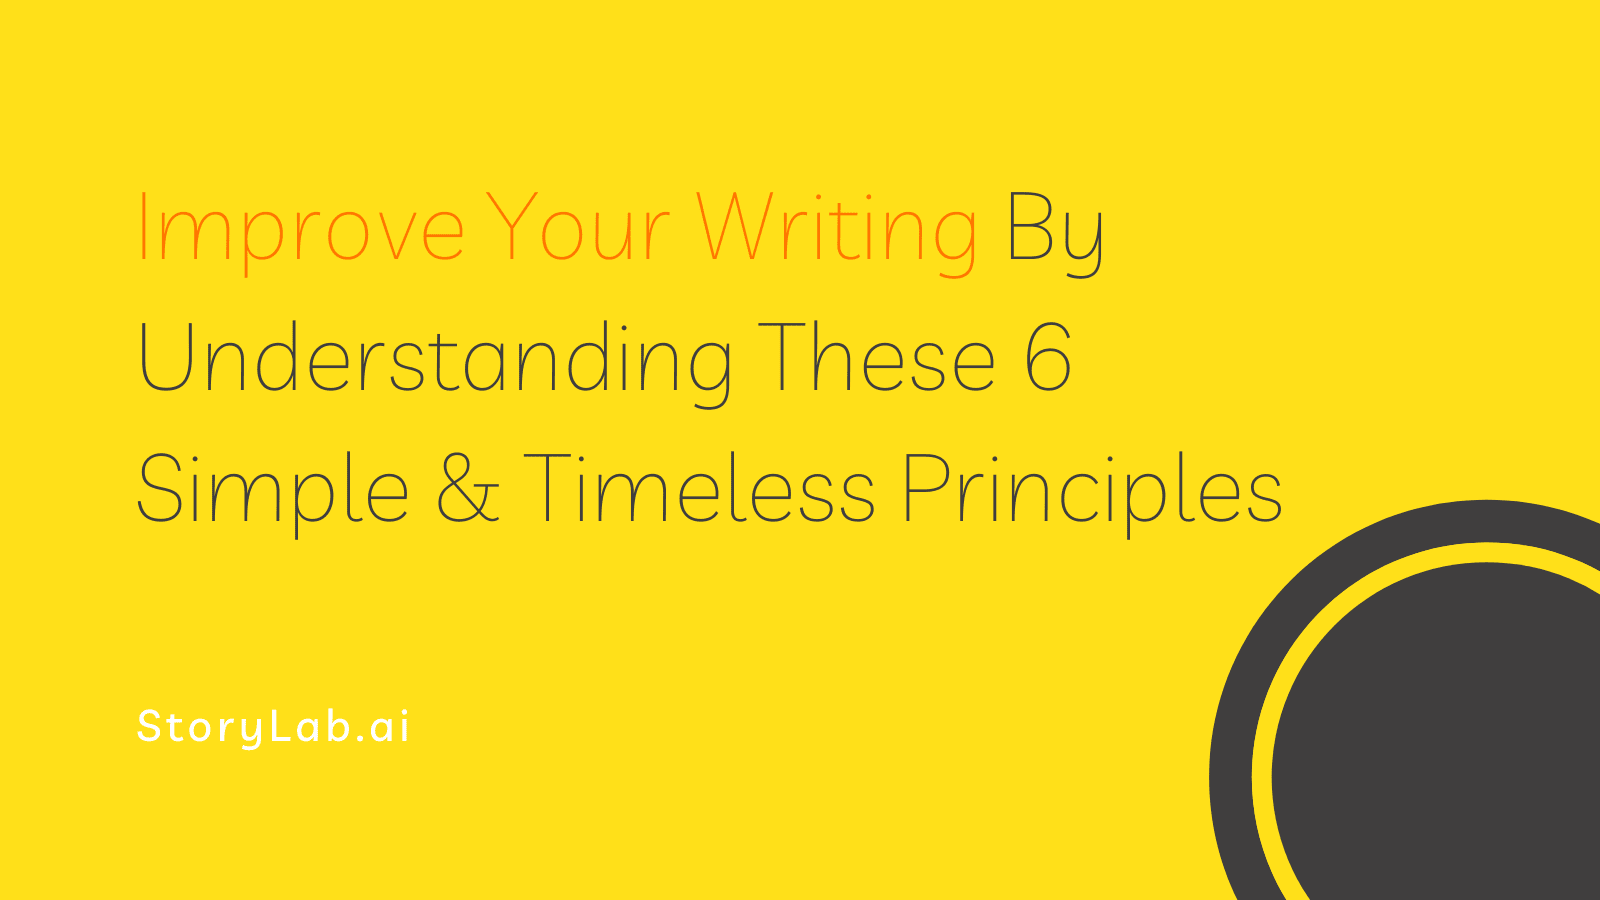 Improve Your Writing By Understanding These 6 Simple & Timeless Principles